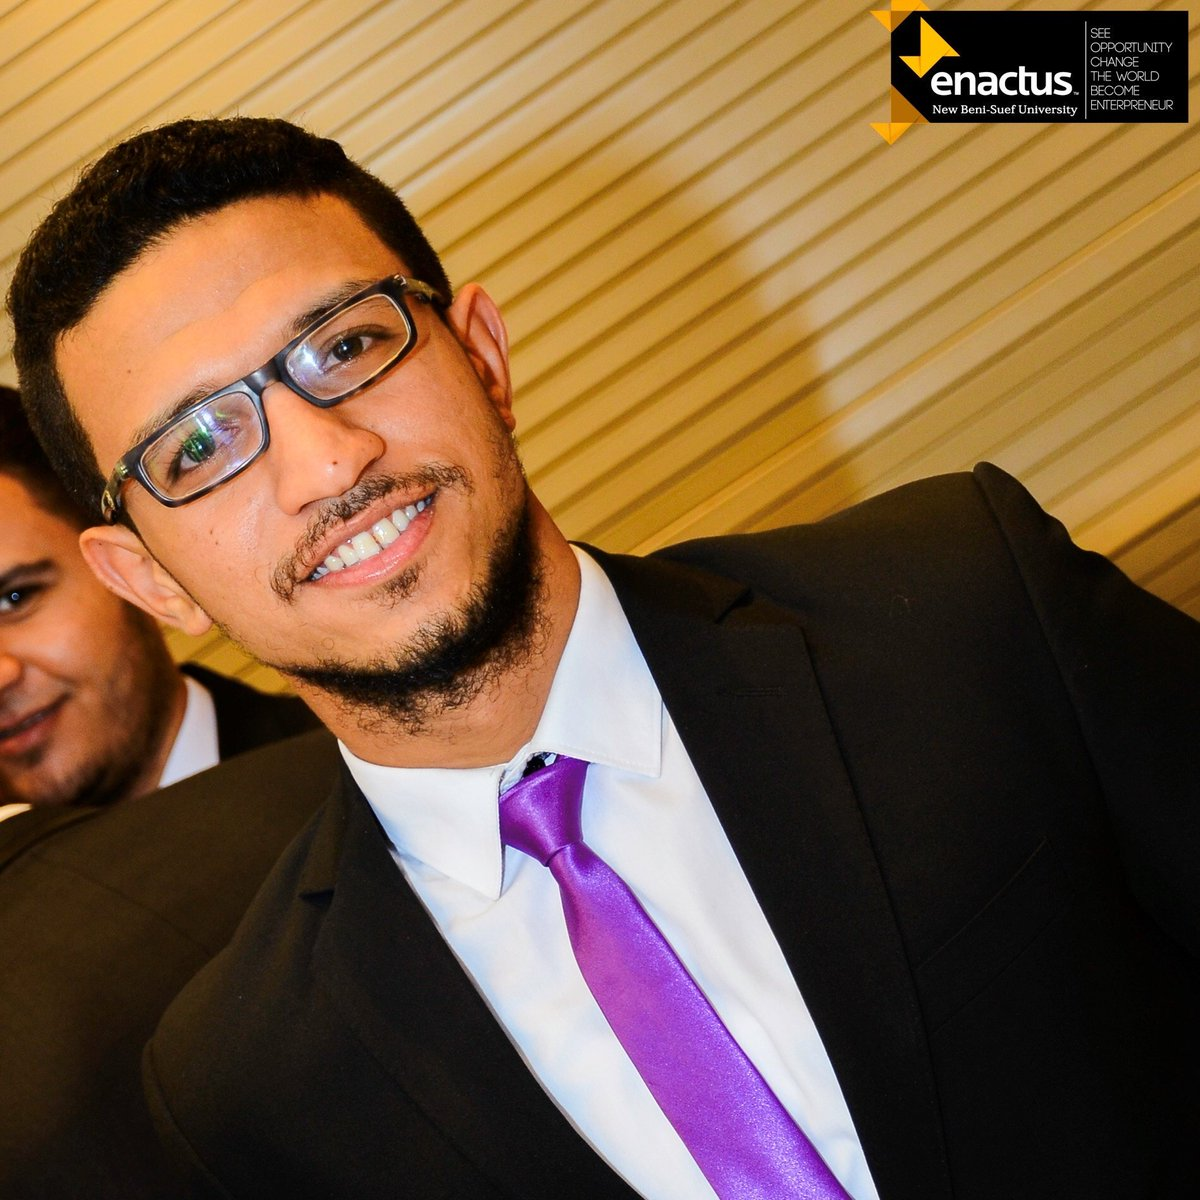 #NewProfilePic #anniversary  #enactus  #enactus_new_bsu  National competition day <br>http://pic.twitter.com/P6ZLeABgnK